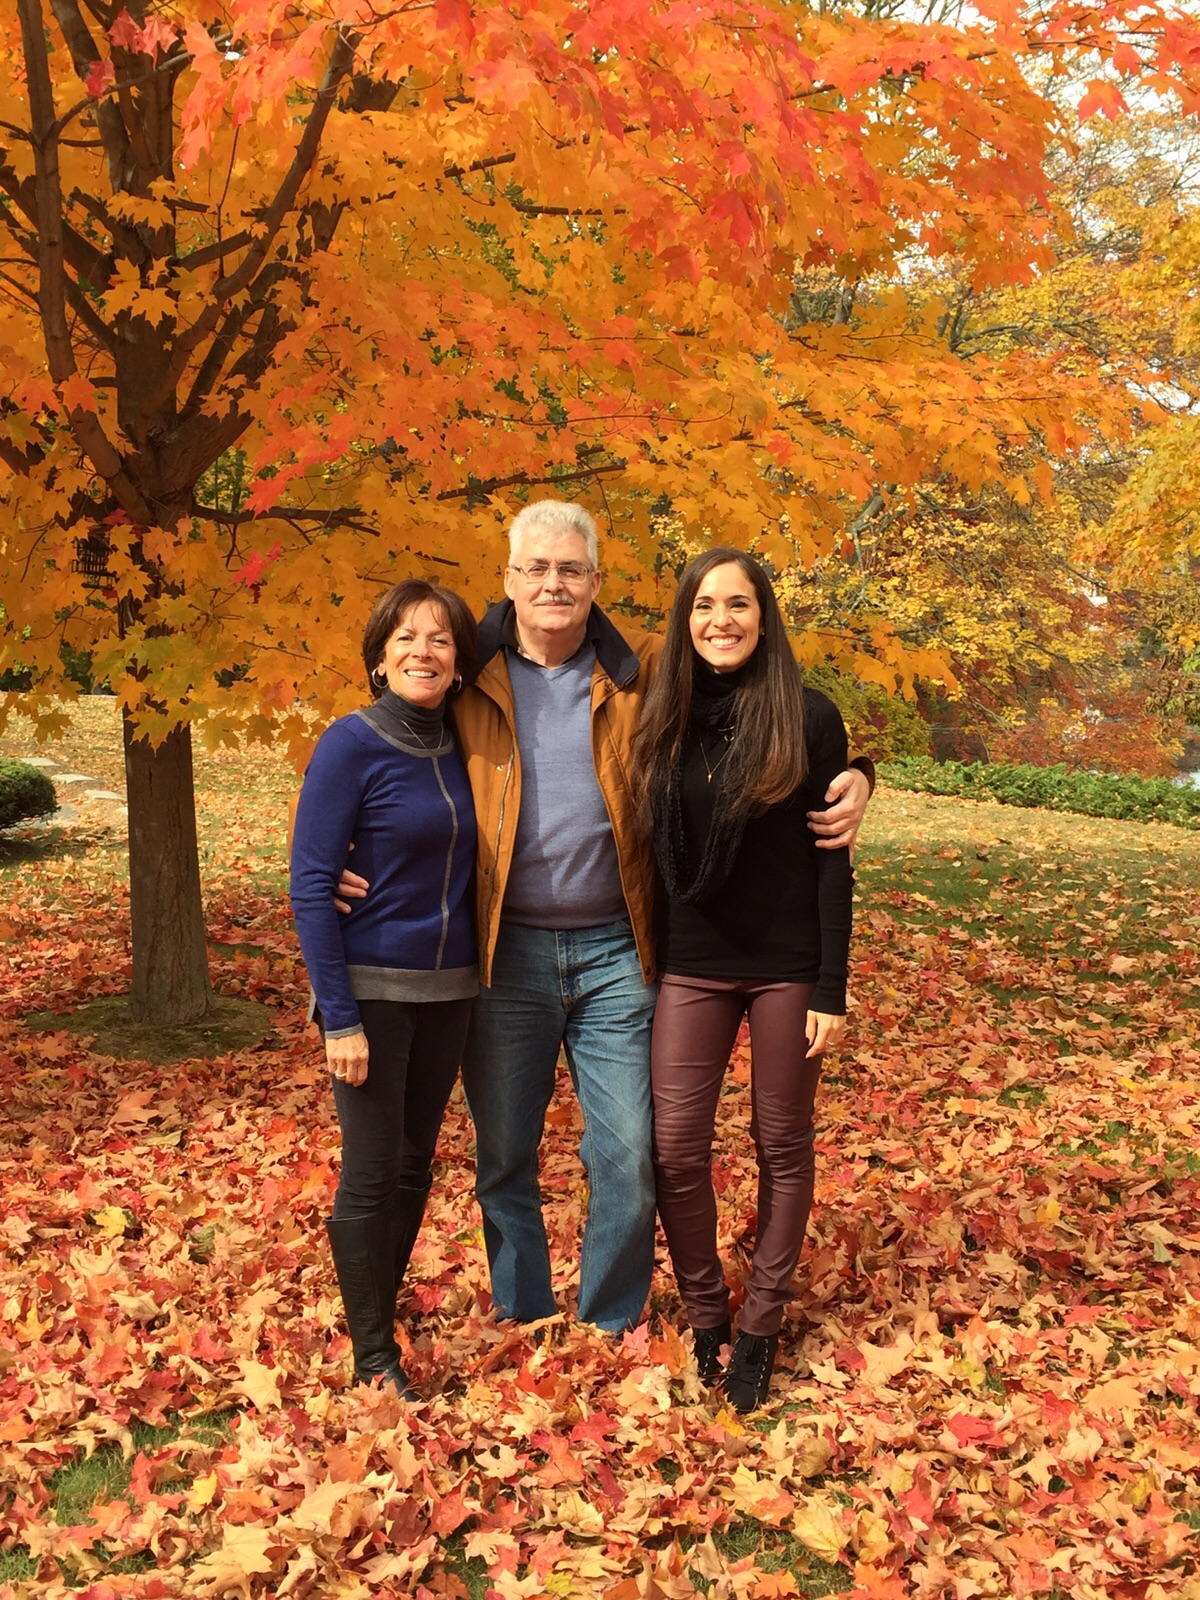 In the same vegan leather H&M burgundy pants and black booties and Zara top as the previous picture.  Perfect for a fall family foliage stroll in CT!